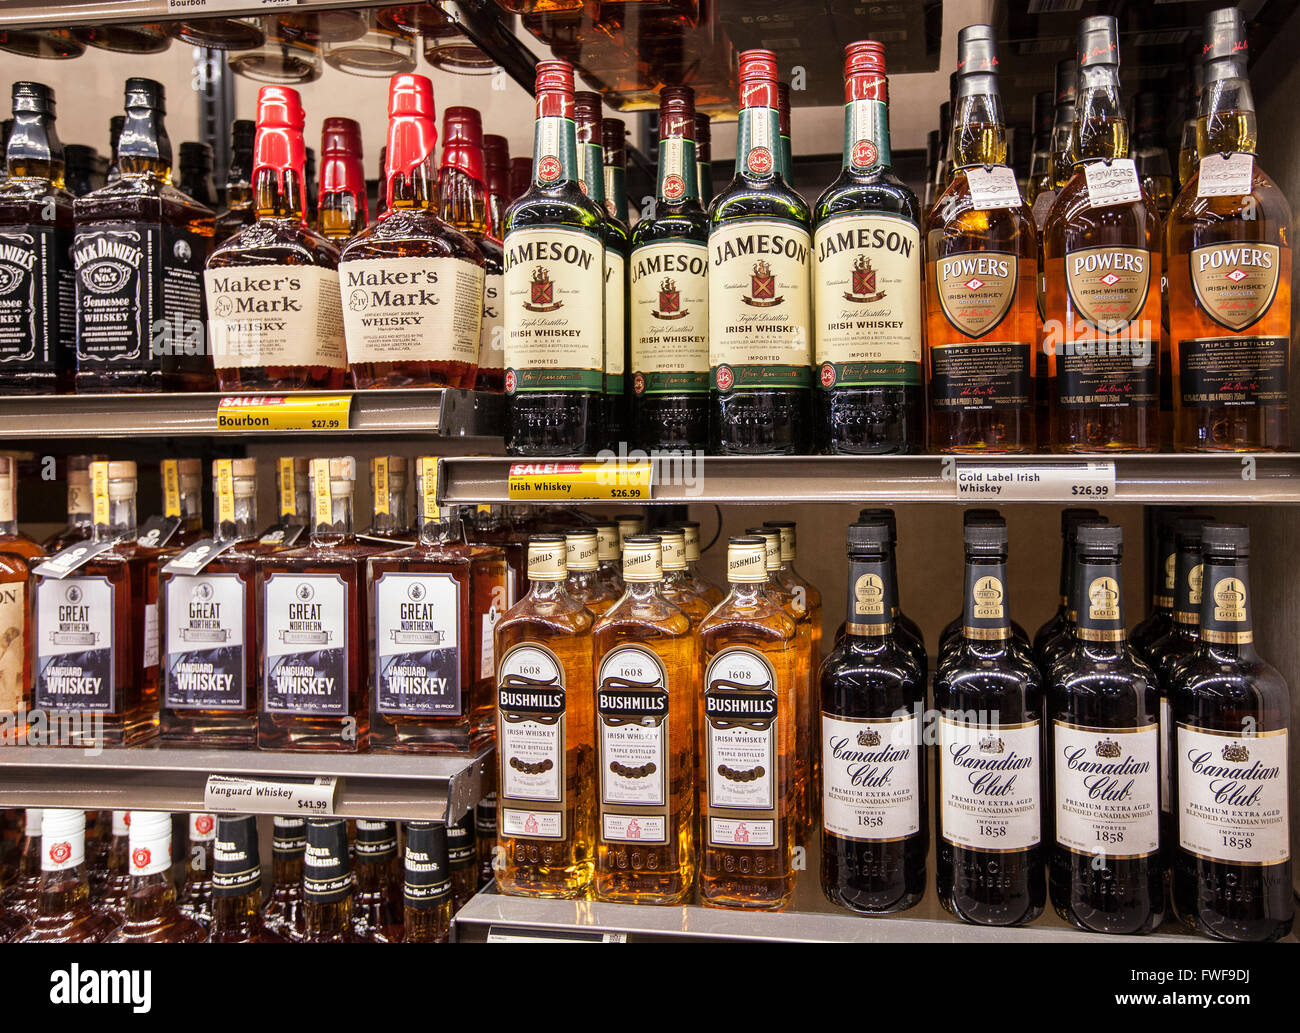 Bottles Of Alcohol On The Shelves Of A Liquor Store Stock